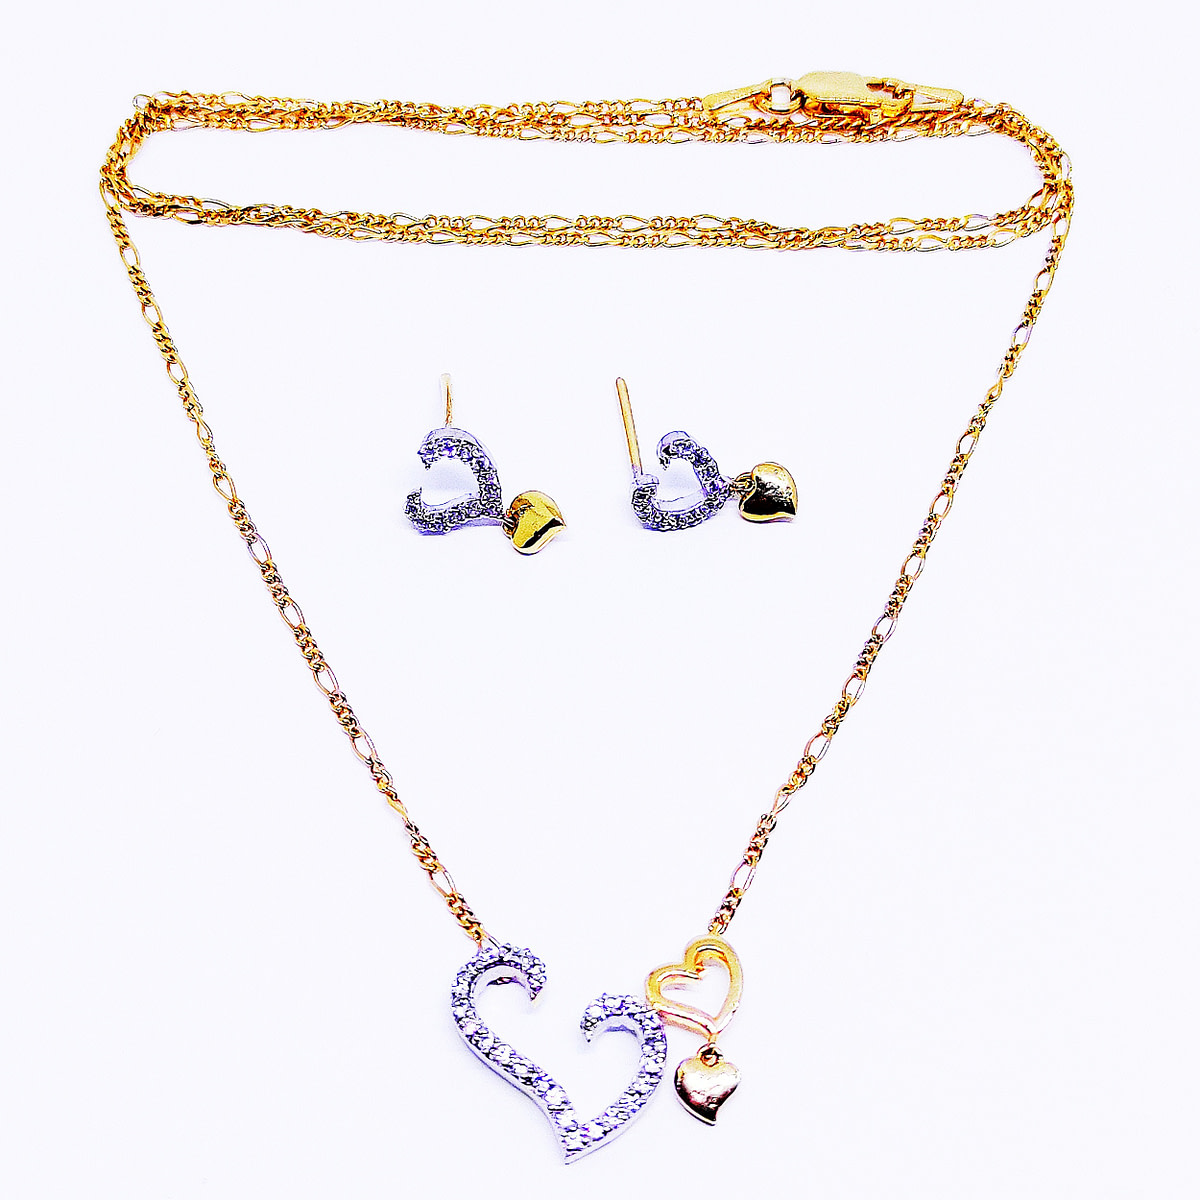 HEART-TO-HEART Pendant & Earrings with Chain